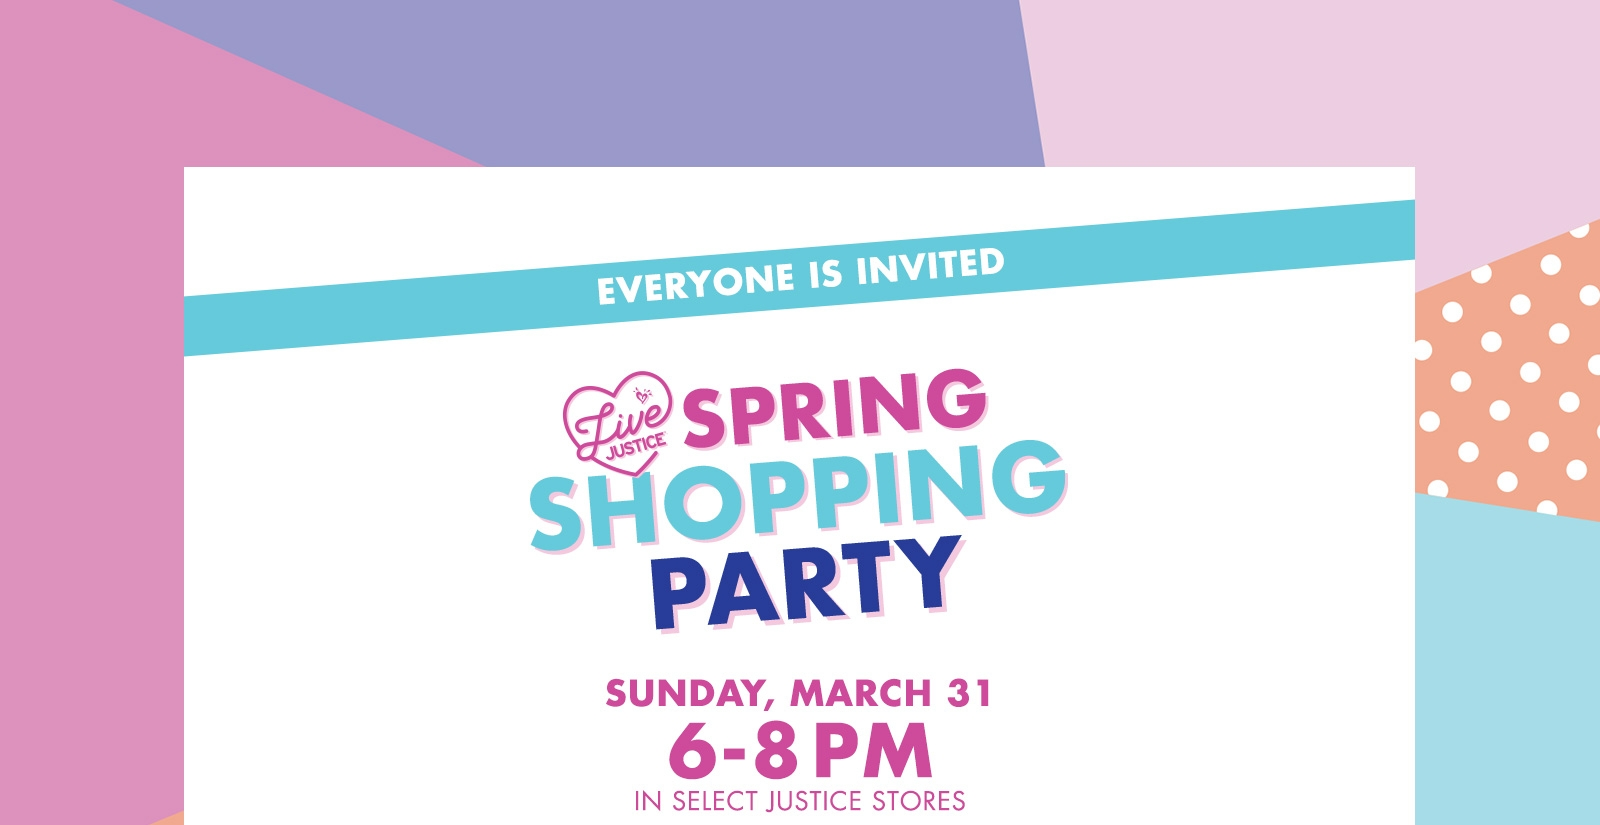 Spring Shopping Party - Sunday March 31, 6-8 PM In Select Justice Stores